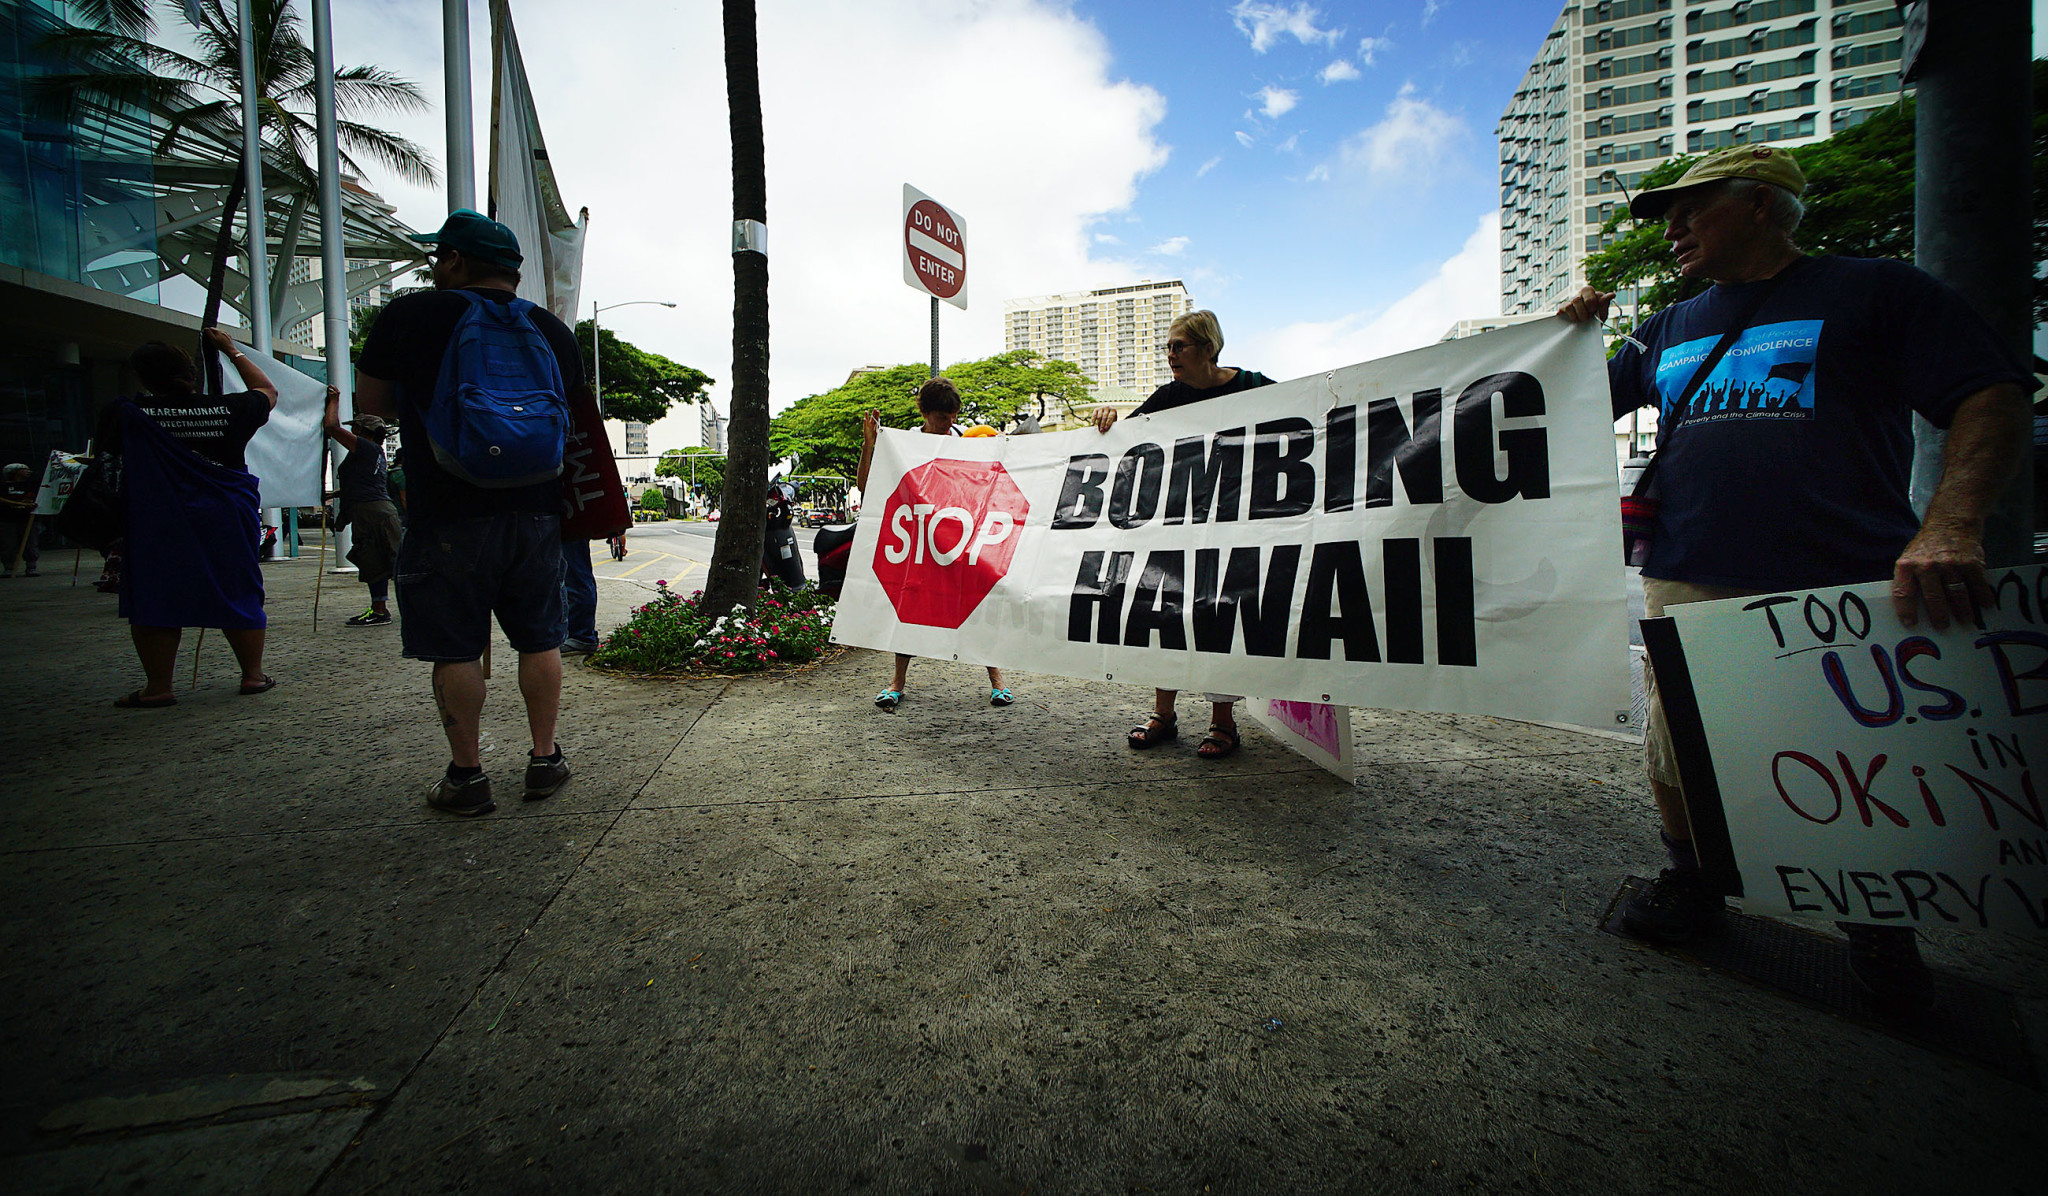 It's just a photo of Dynamite Positive Protest Signs